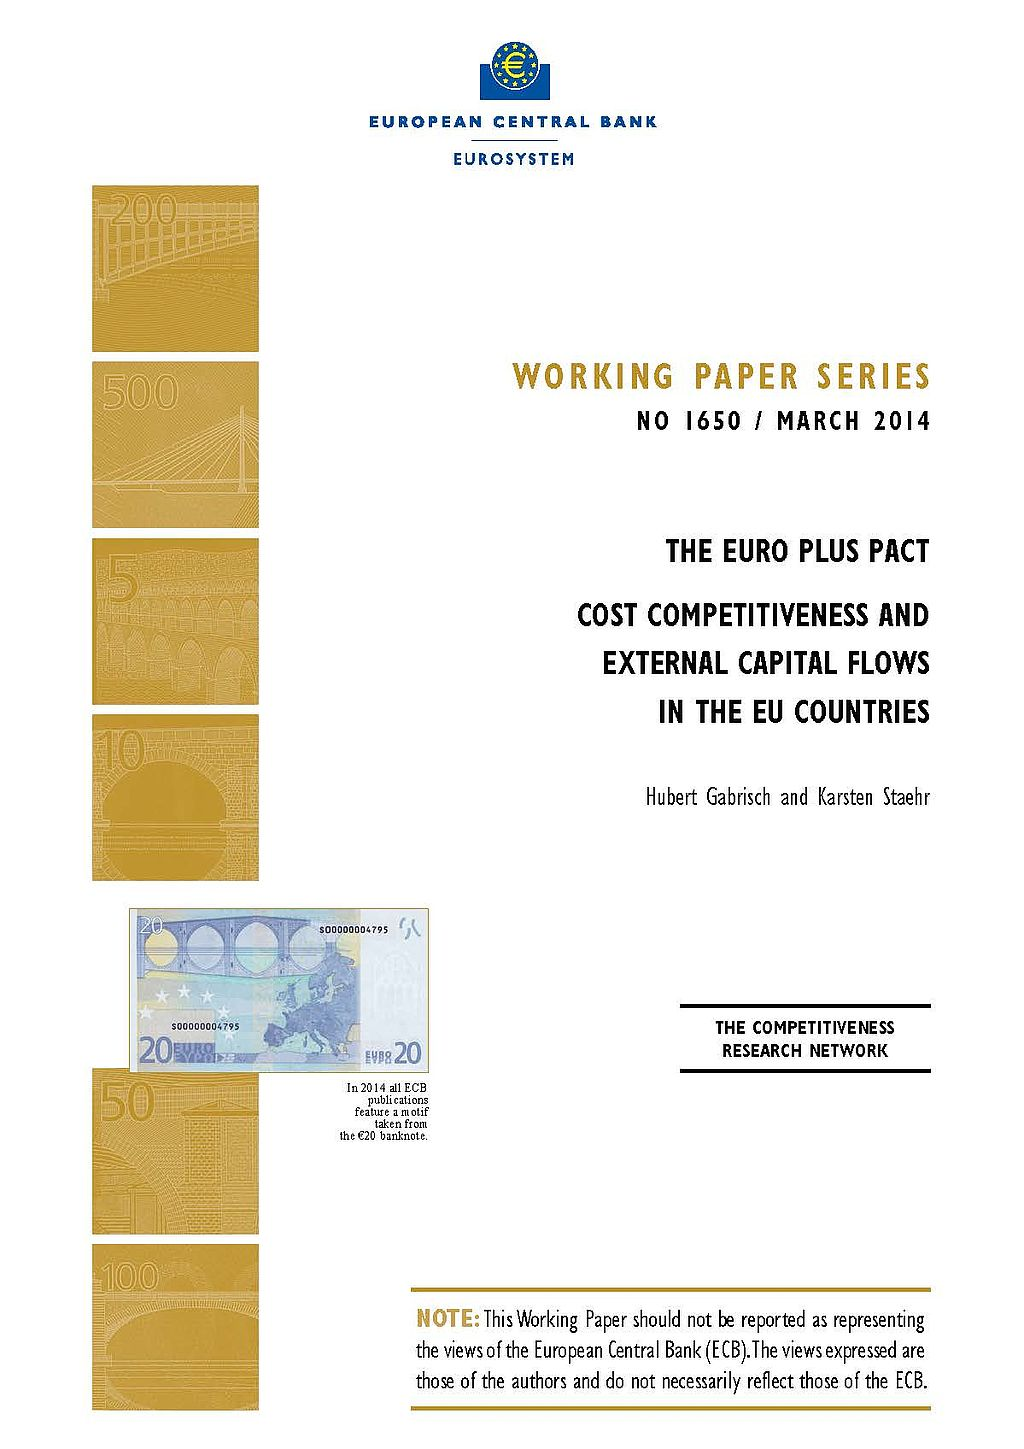 cover_ECB-Working-Paper-Series_2014-march-1650.jpg